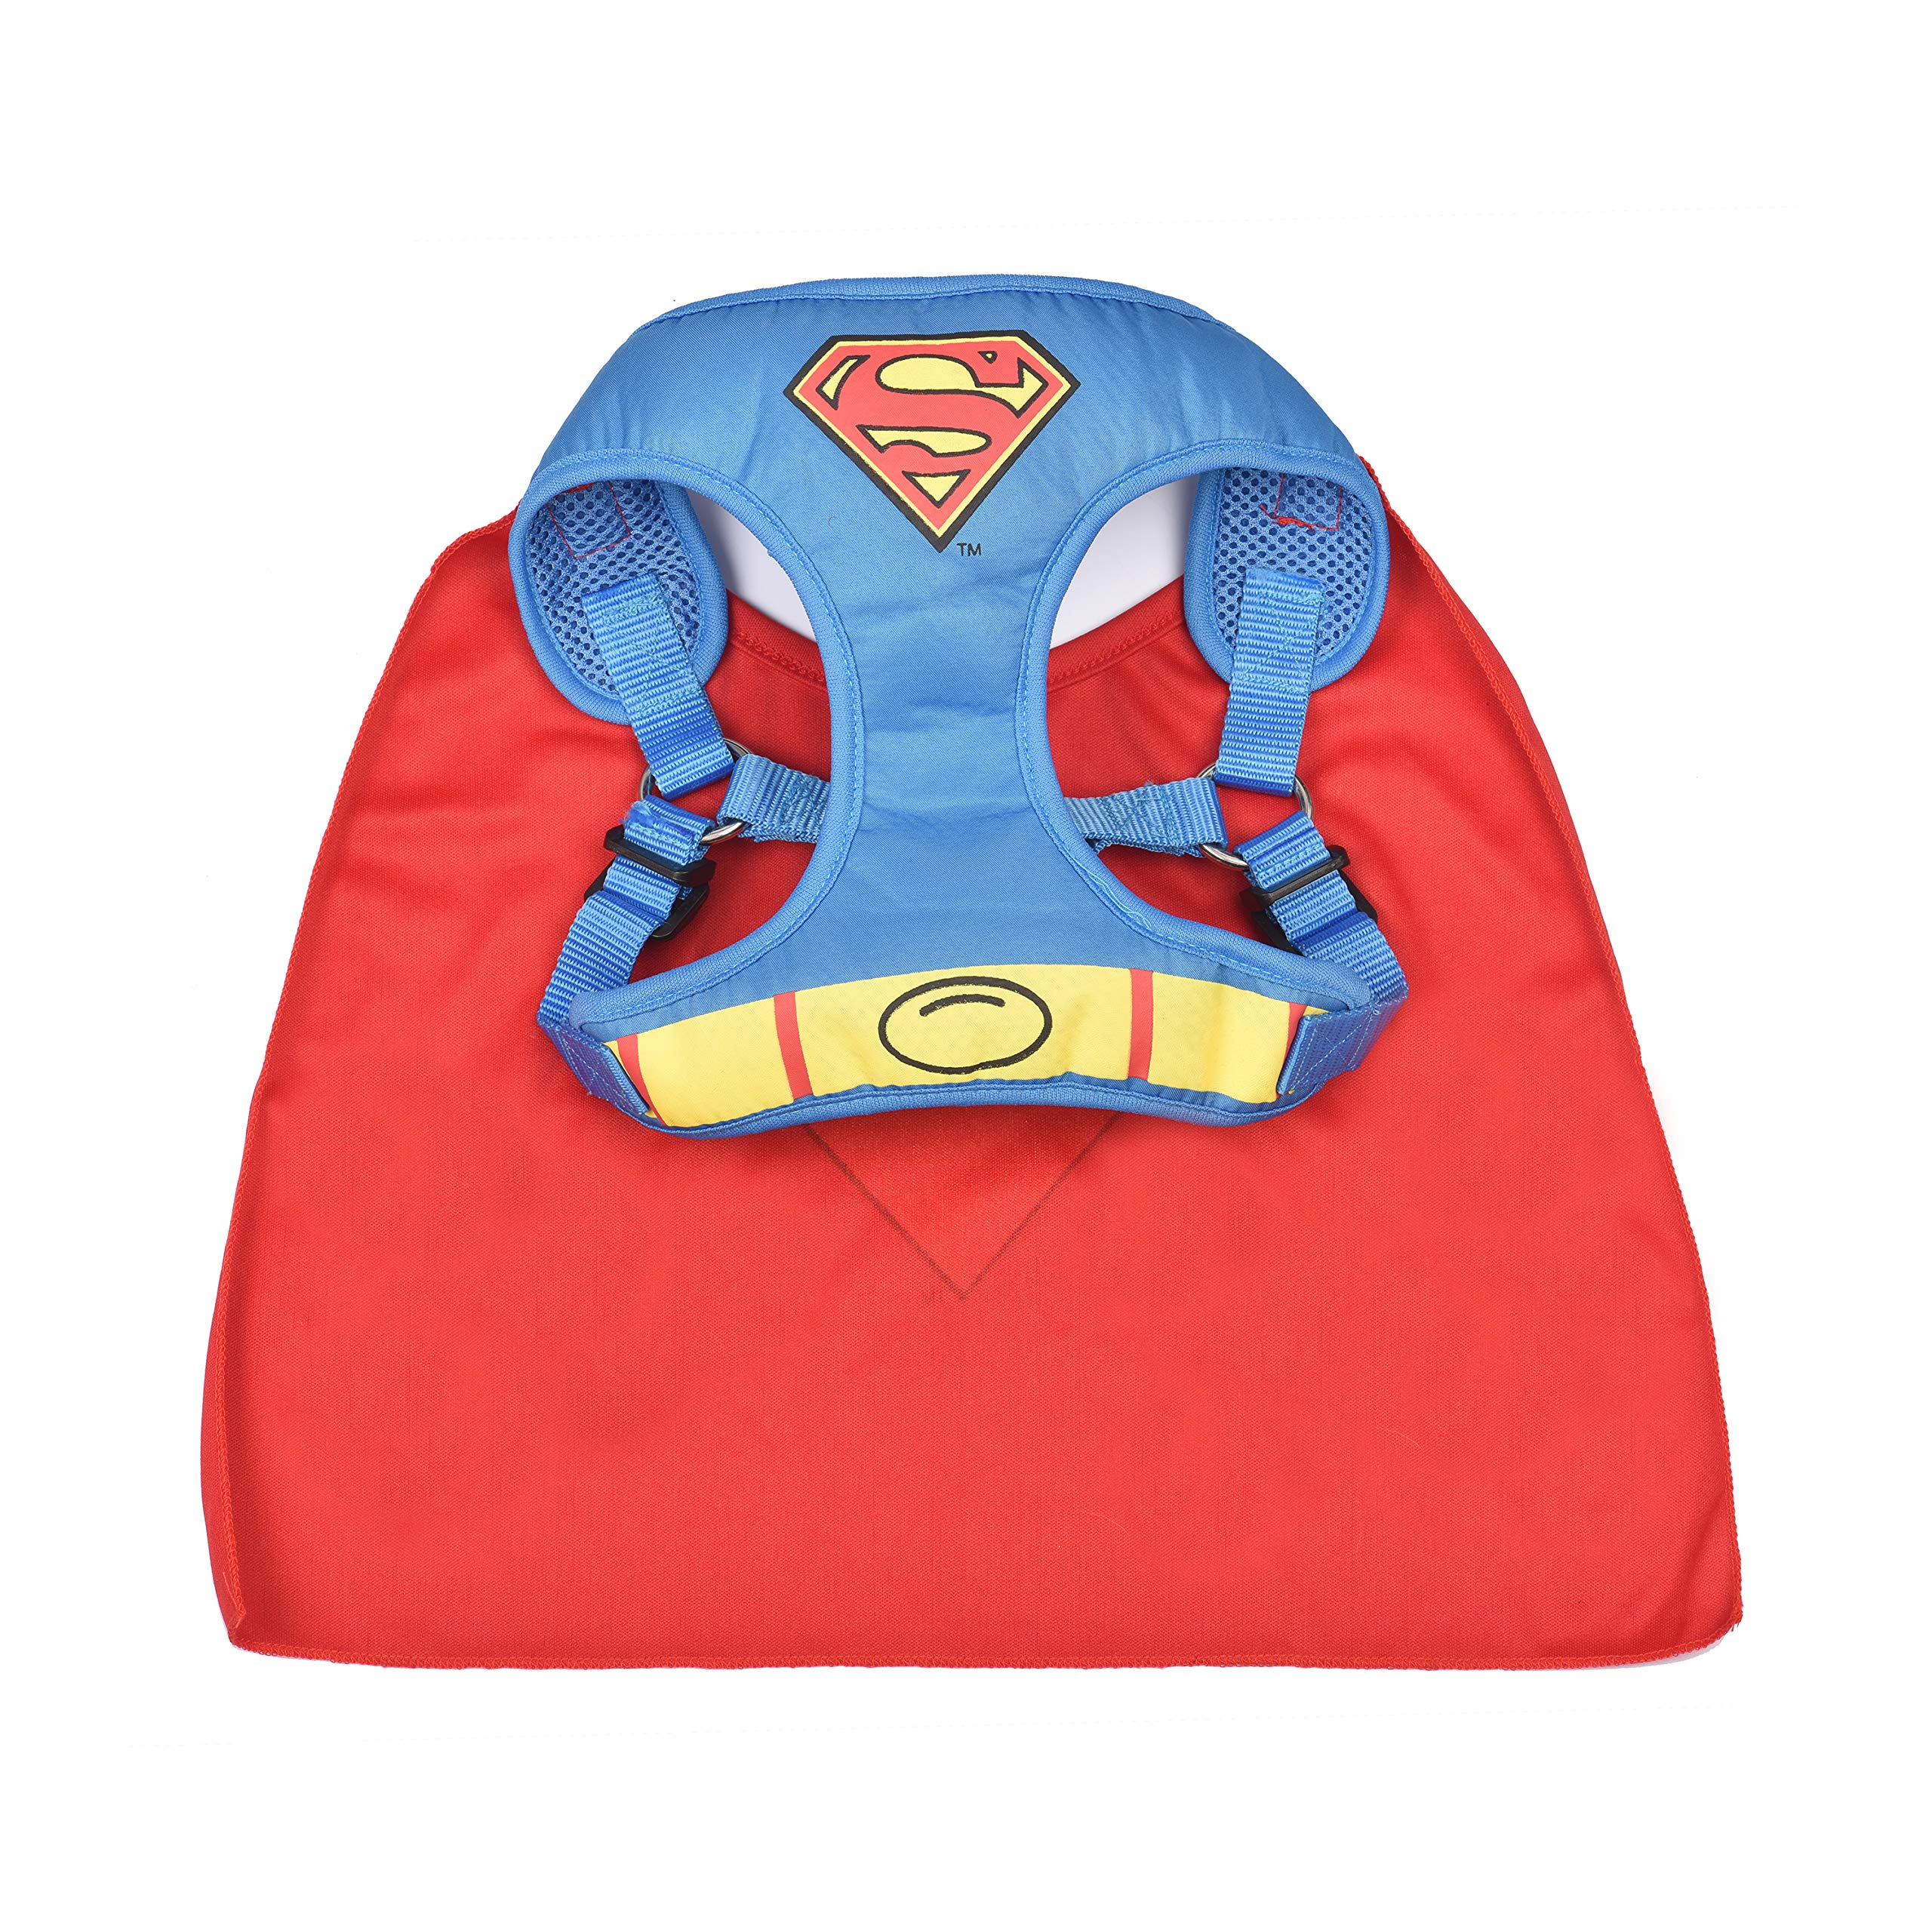 DC Comics Superman Harness for Dogs | Superhero Dog Harness | Harness for Medium Size Dog Breeds by DC Comics for Dogs